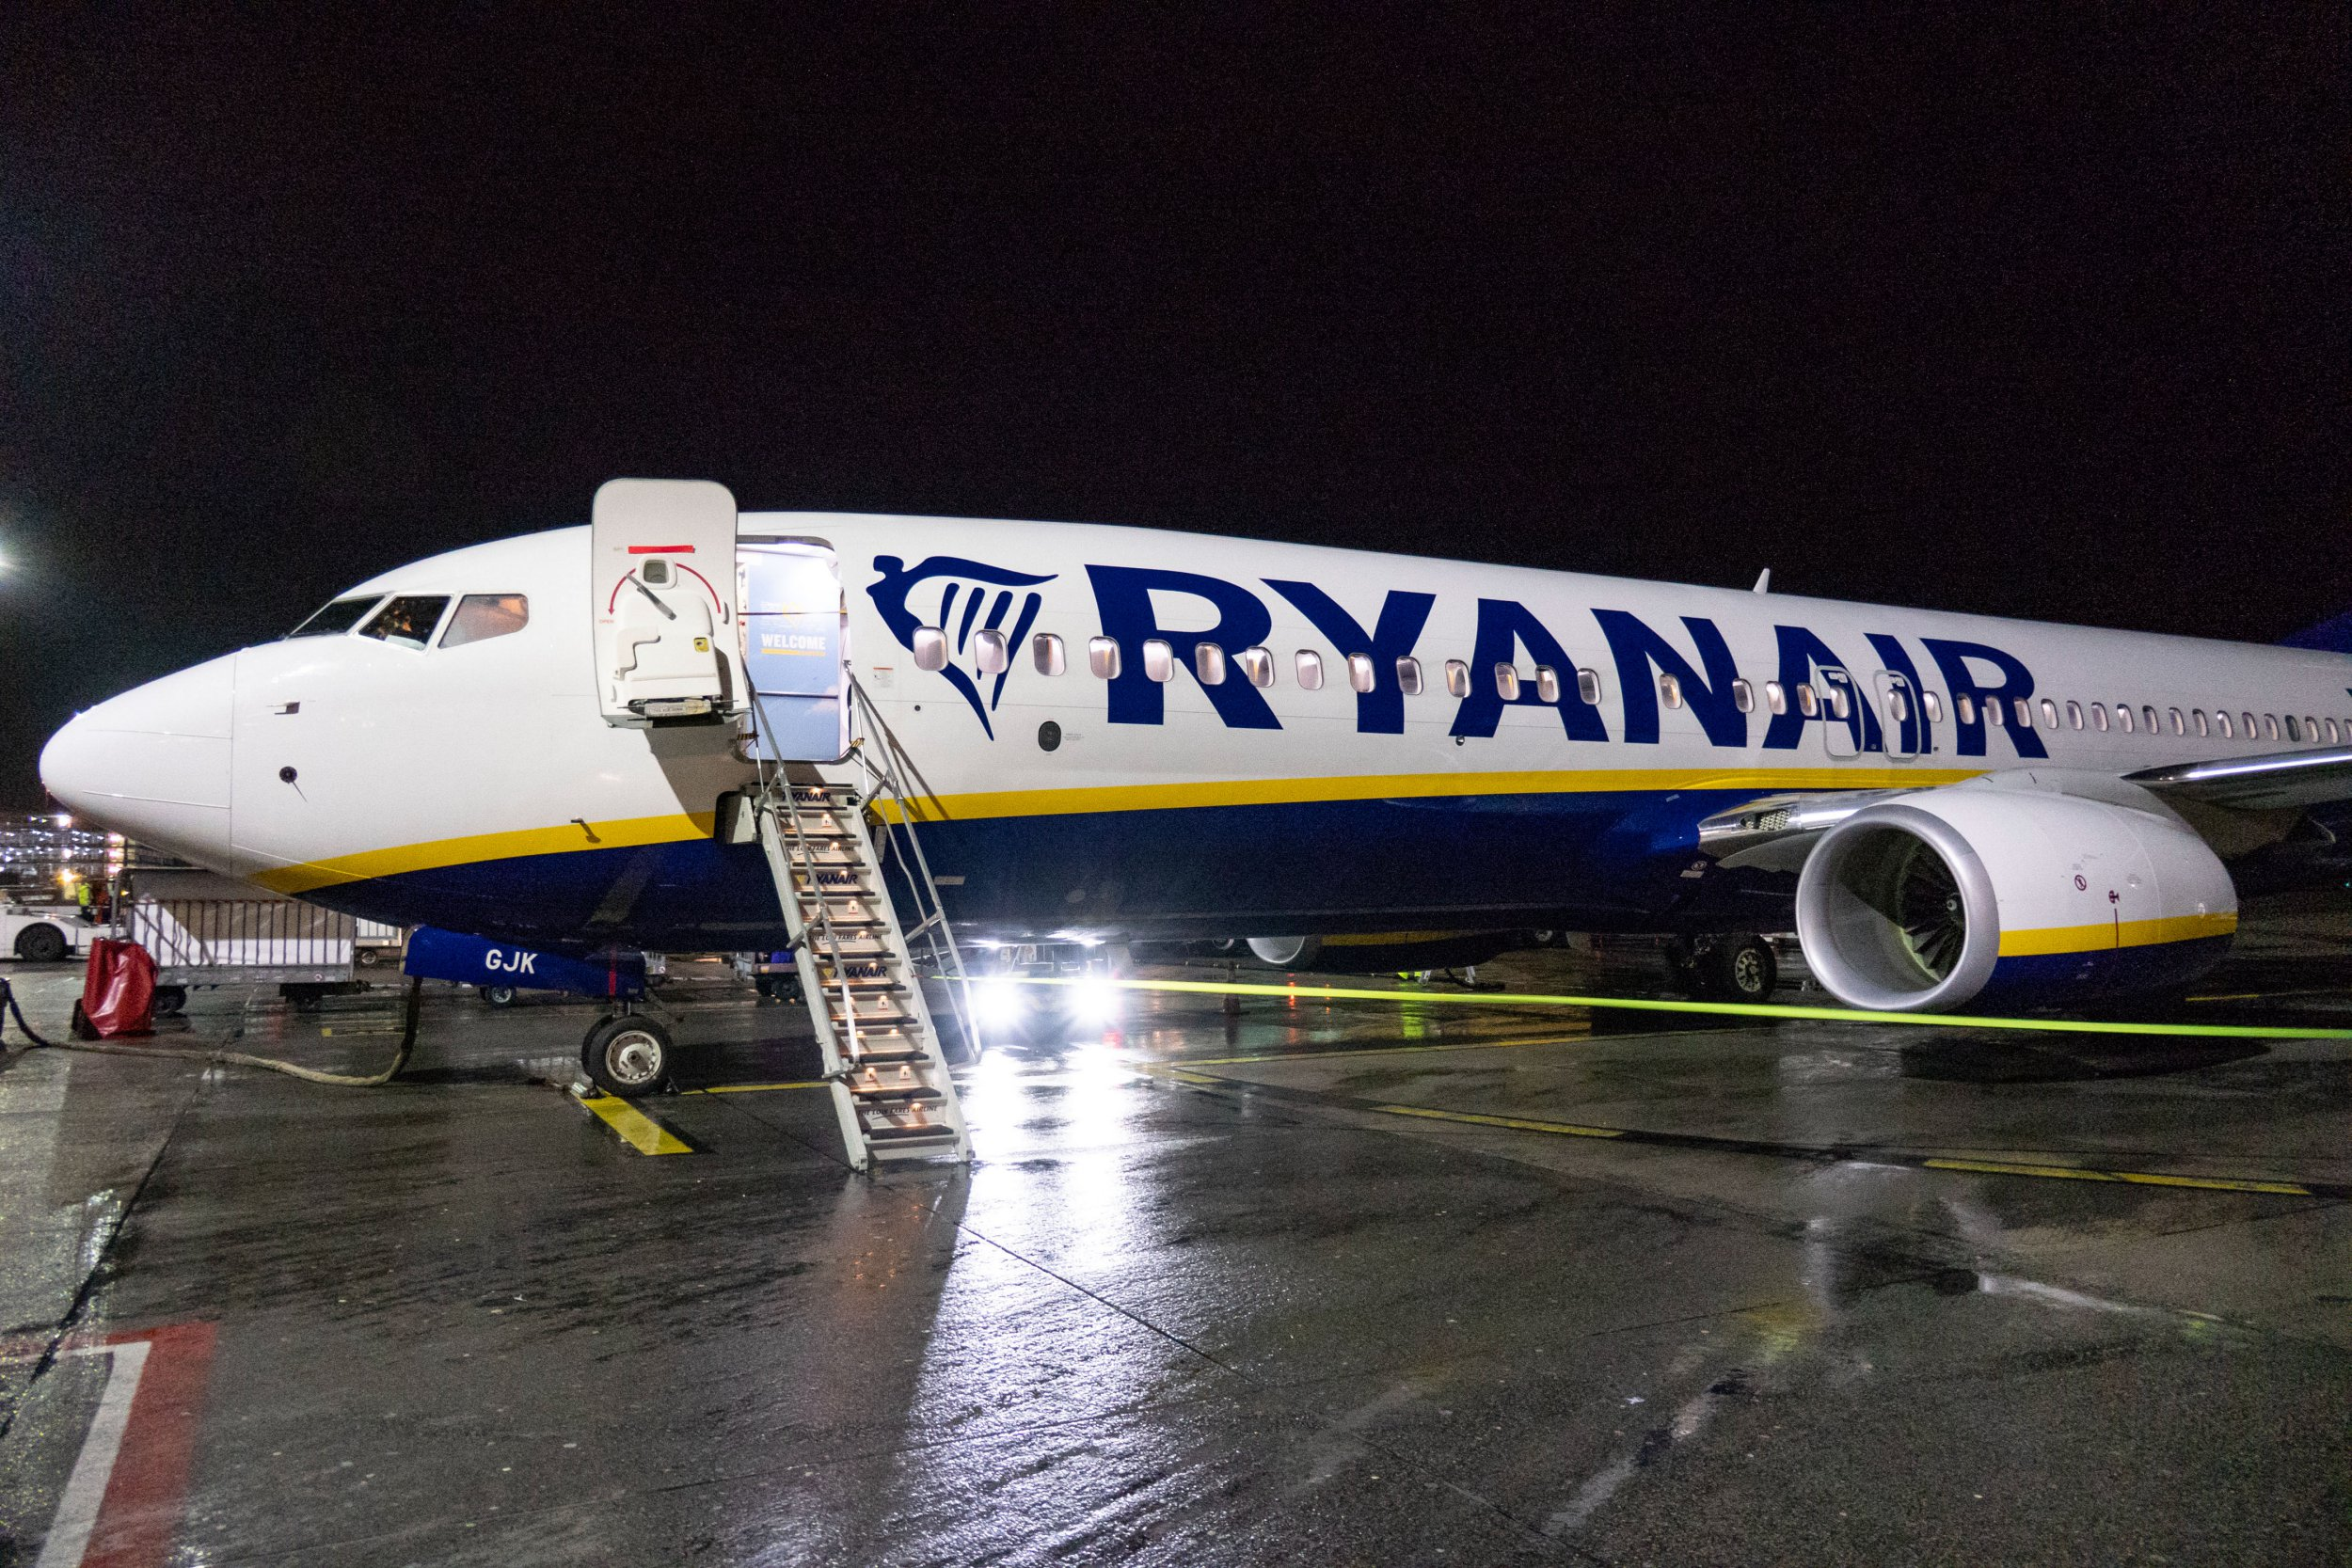 A Ryanair Boeing 737-800 aircraft with registration EI-GJK parked at Eindhoven airport tarmac at night, in the Netherlands. Passengers are disembarking and walking out of the plane. (Photo by Nicolas Economou/NurPhoto via Getty Images)